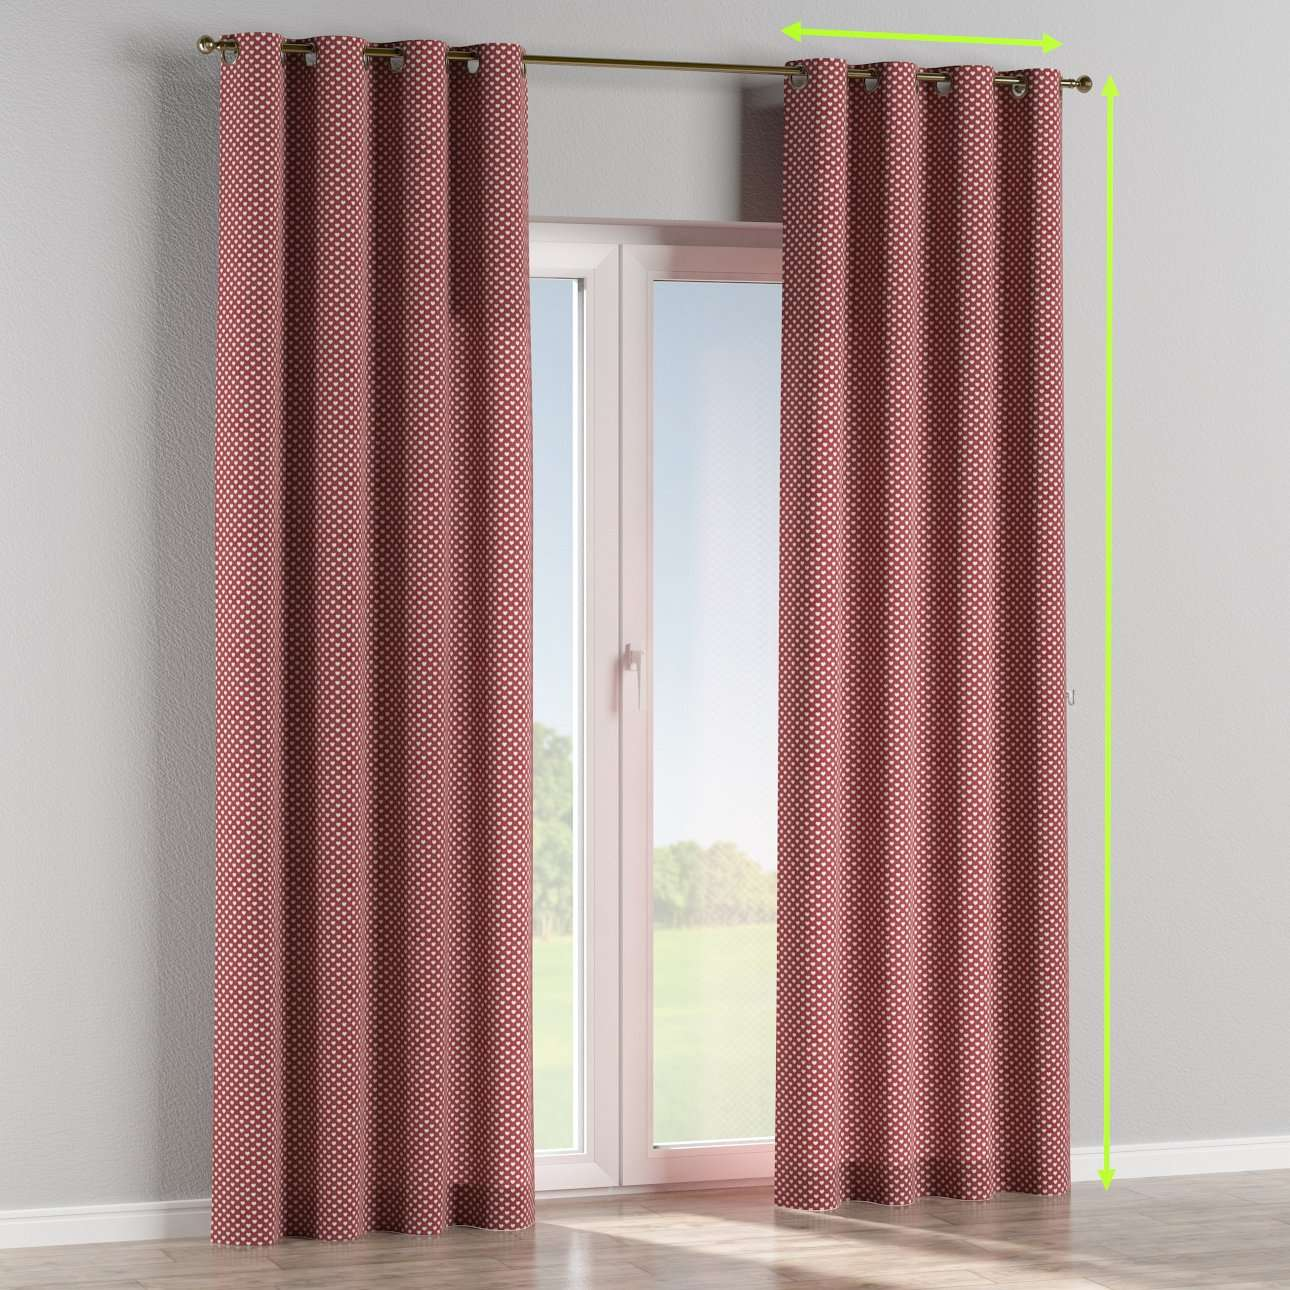 Eyelet lined curtains in collection Nordic, fabric: 630-40